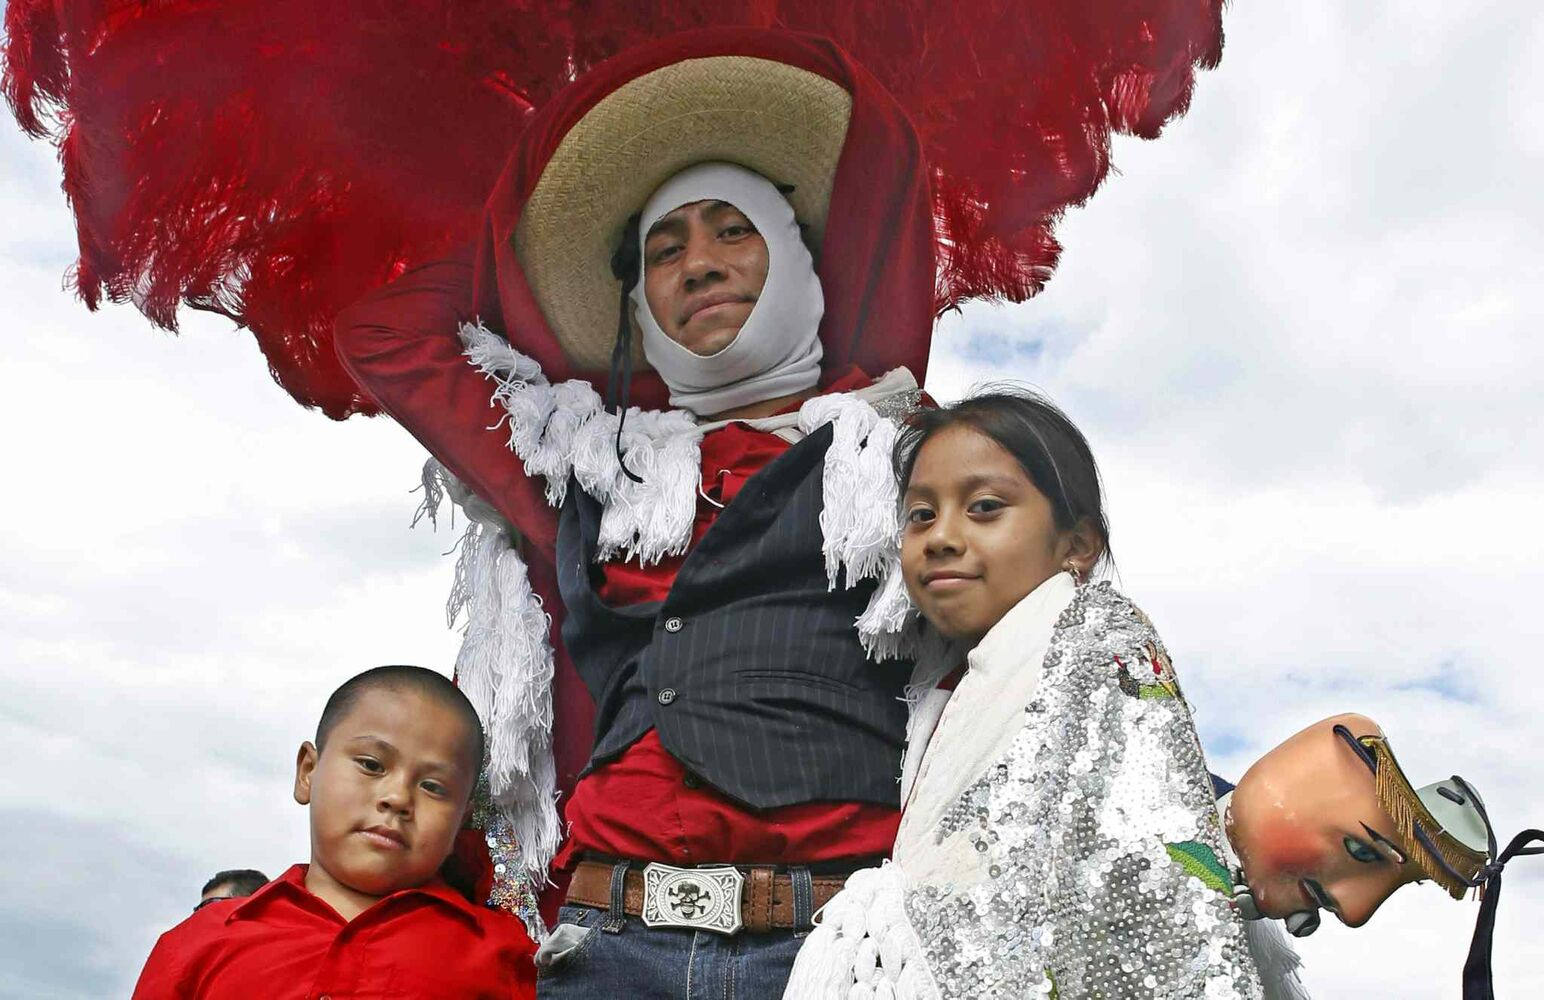 "Mario Perez, 30, poses for a photo with his children Michael, 6, and Emily, 7, at a park in the Brooklyn borough of New York. At the park costumed dancers celebrated a festival from their home state of Tlaxcala, Mexico. Being a good dad, Perez said, ""is very important. This is the way, with the family together, happy. We try to keep the tradition around here."" (Kathy Willens / The Associated Press)"